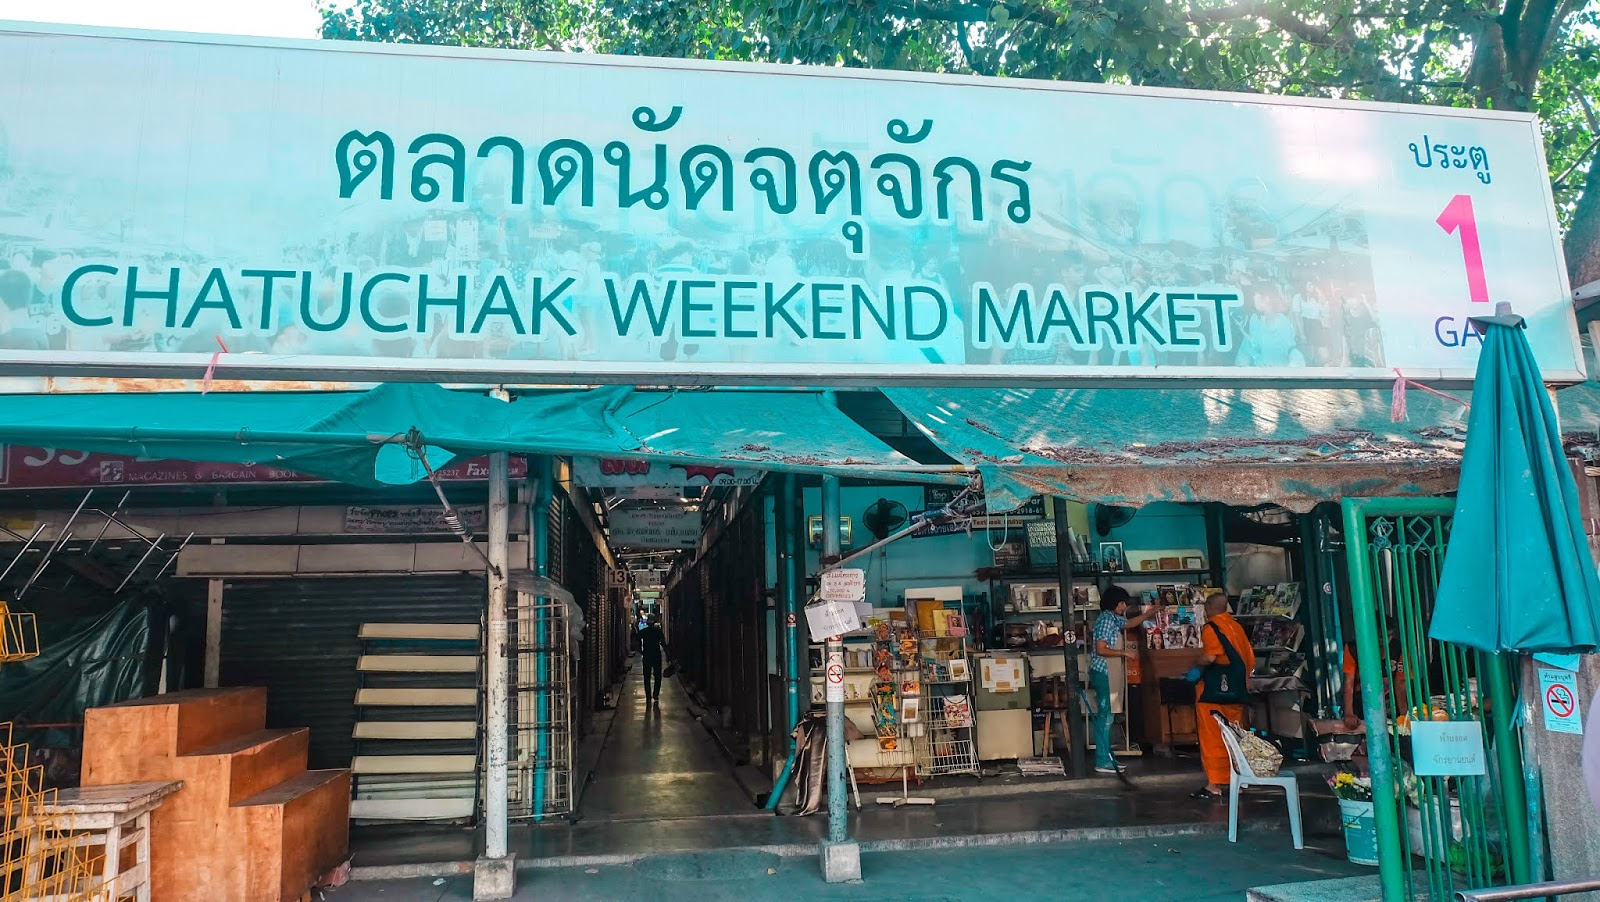 Bangkok Trip: Kalap Belanja di Chatuchak Weekend Market - The Happilionaire  Lifestyle Blogger